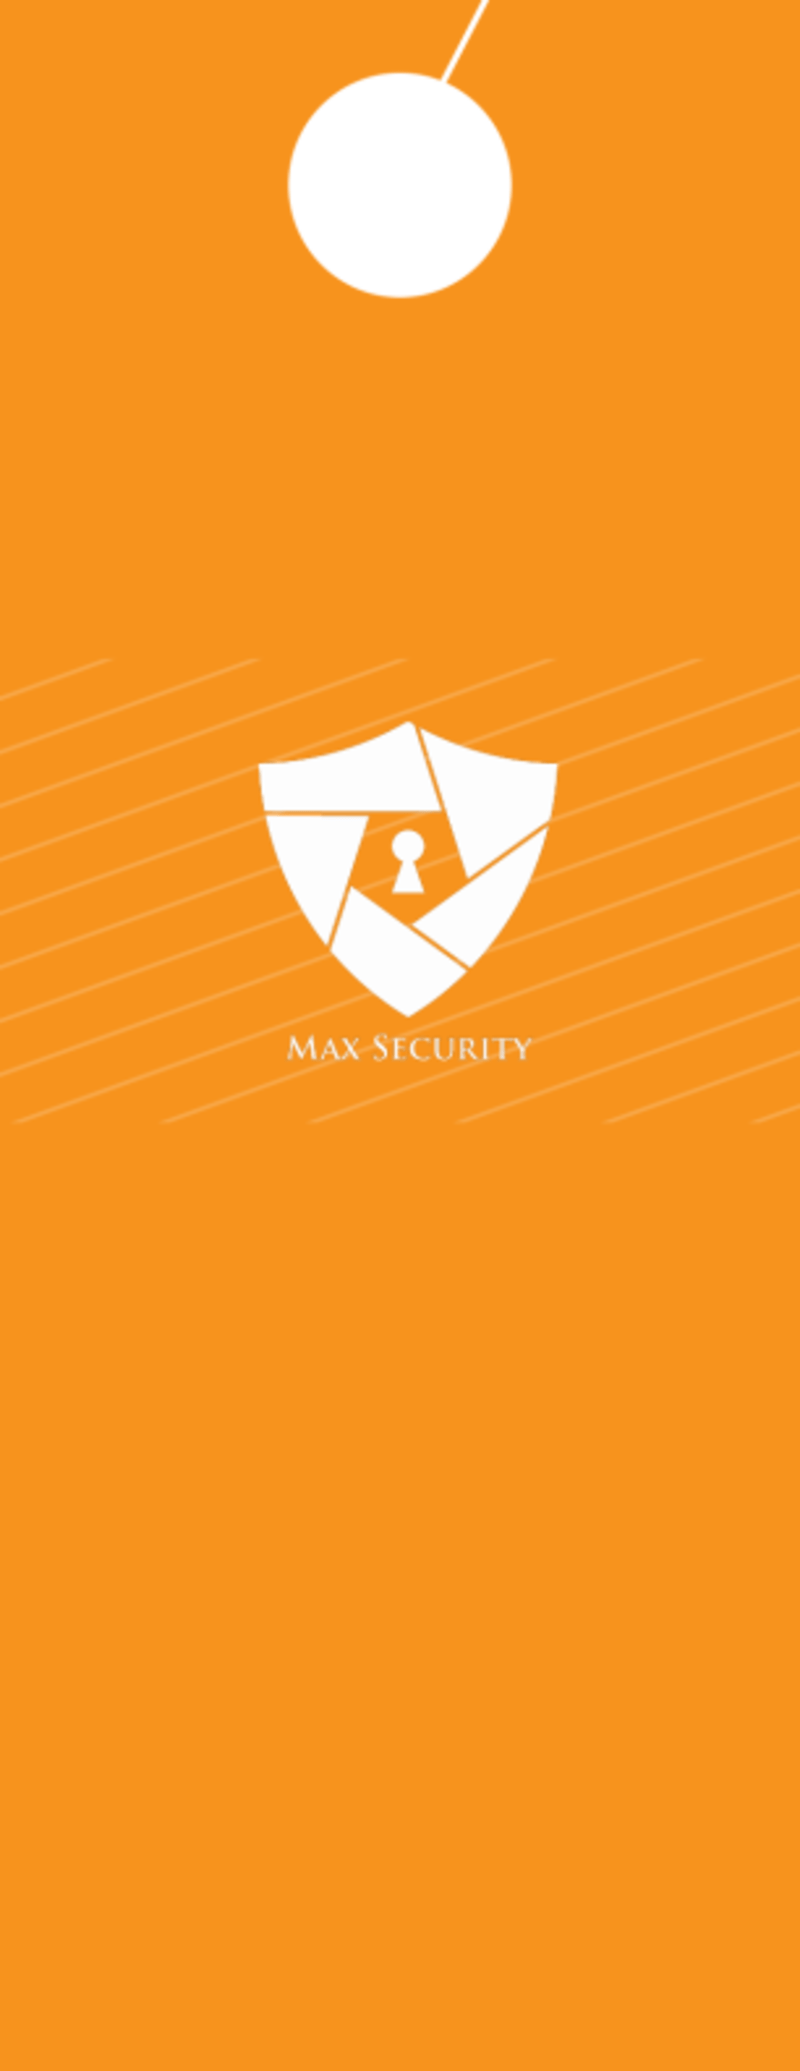 Max Home Security Door Hanger Template Preview 3